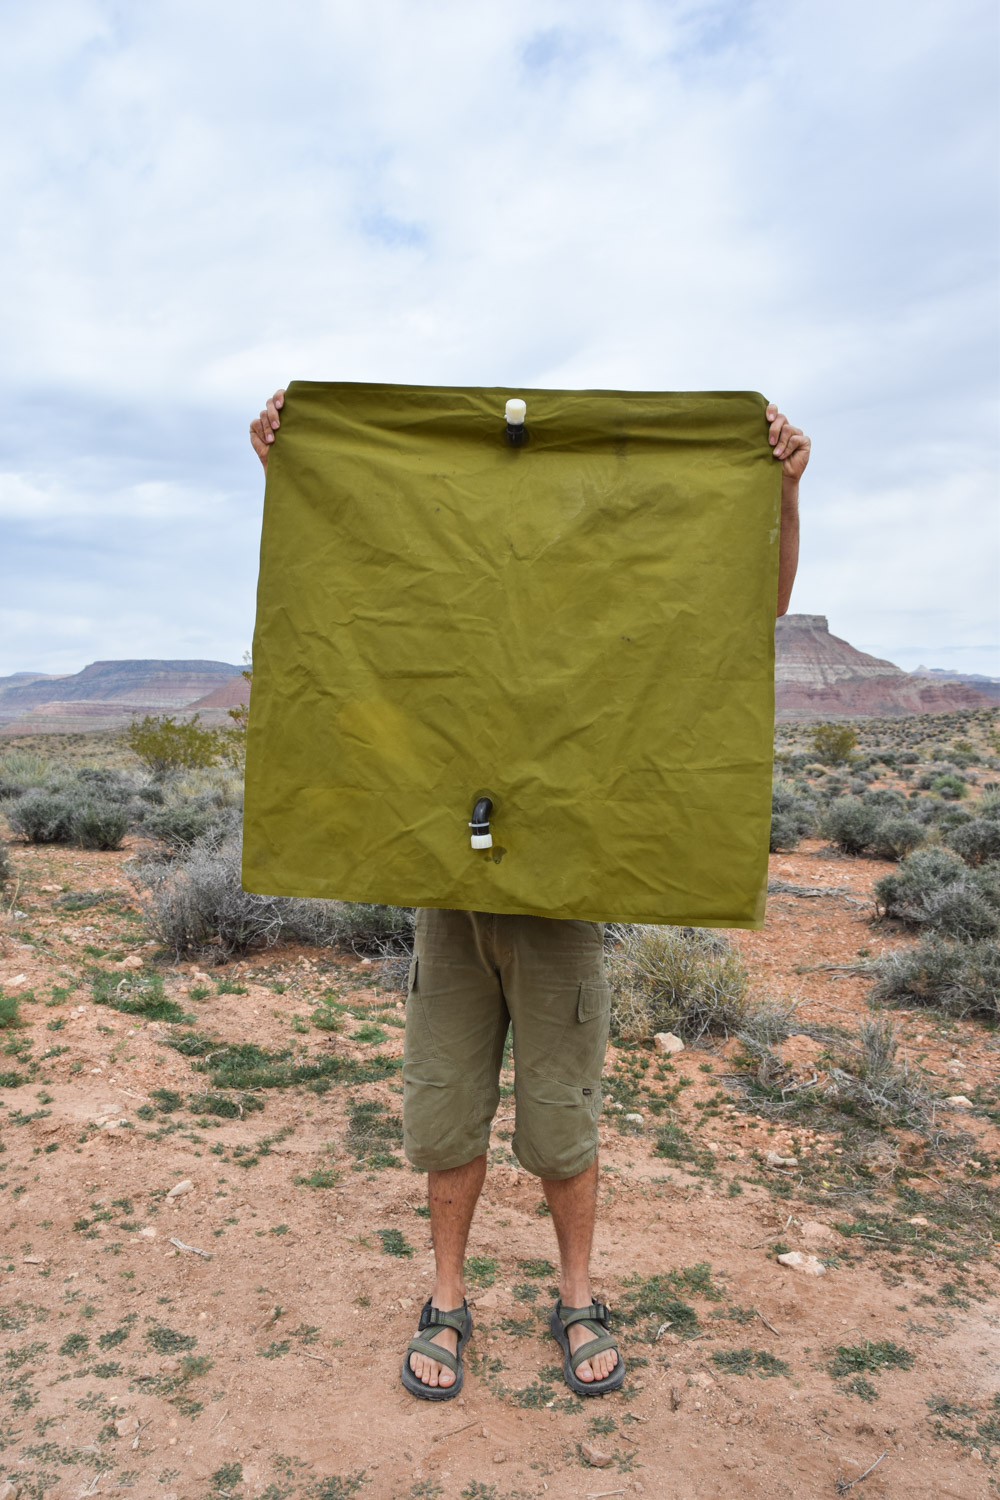 The Aquatank2 30 gallon water bag is 3' x 3' unfolded.